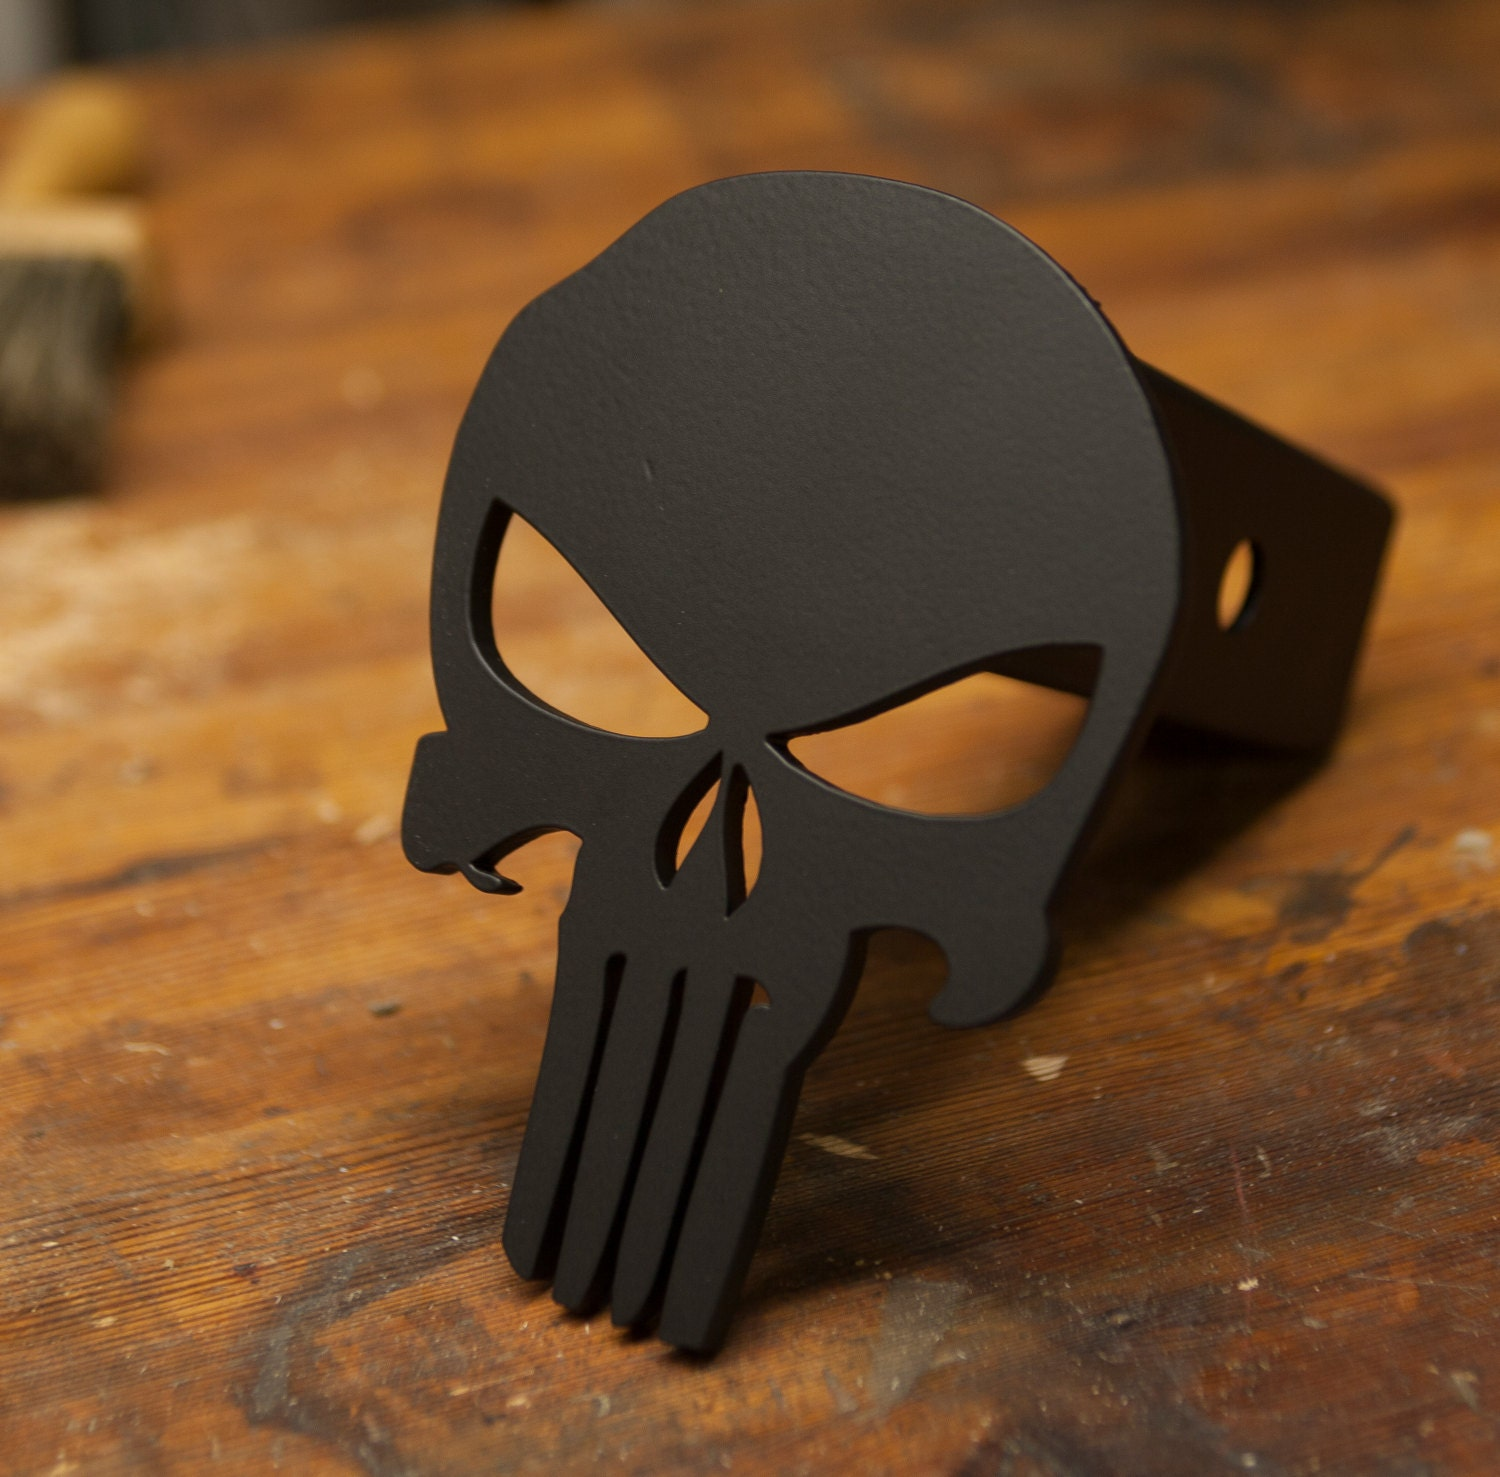 Punisher Trailer Hitch Cover Black